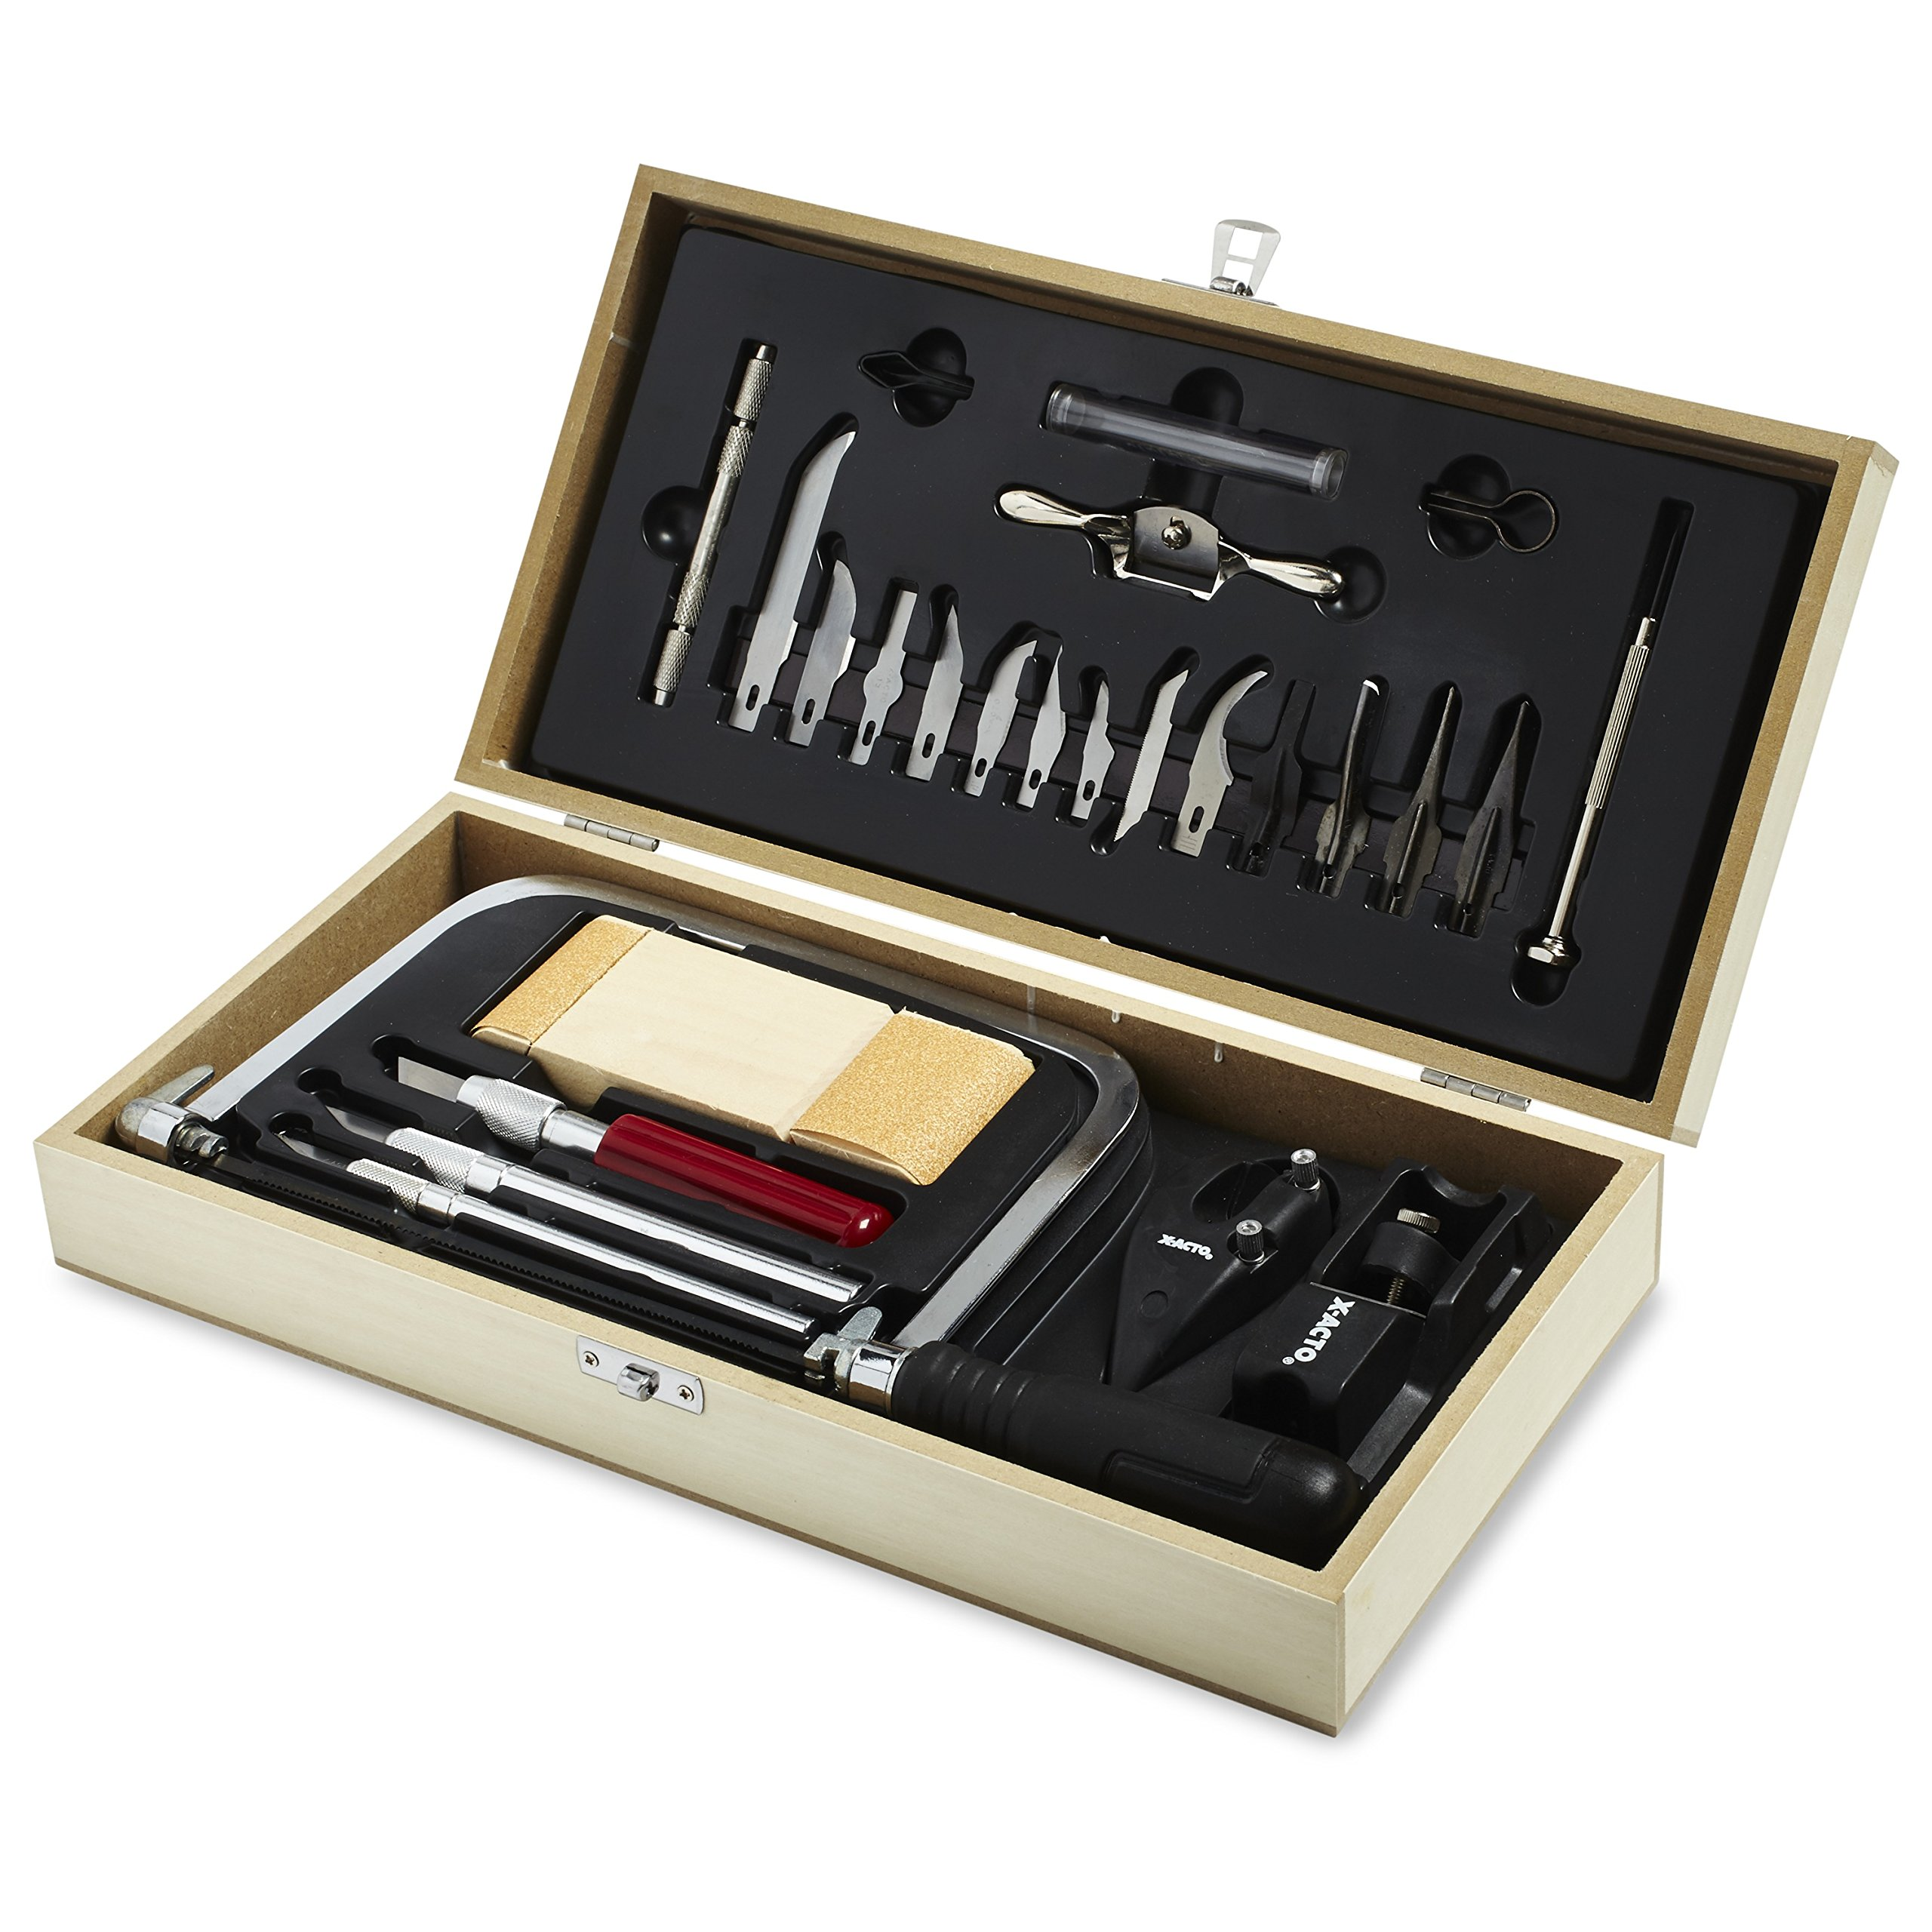 X-ACTO Hobbytool Set, Deluxe 30 Piece Set, Great for Arts and Crafts, including Pumpkin Carving